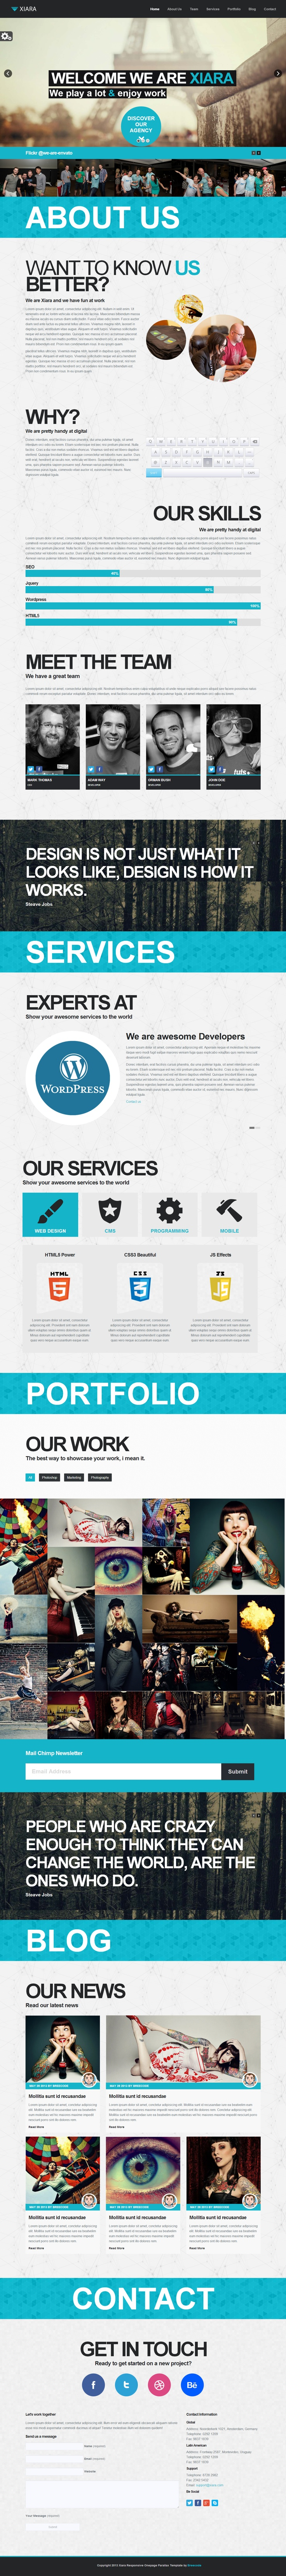 Onepage Parallax HTML Template by ~WordPressAwards on deviantART